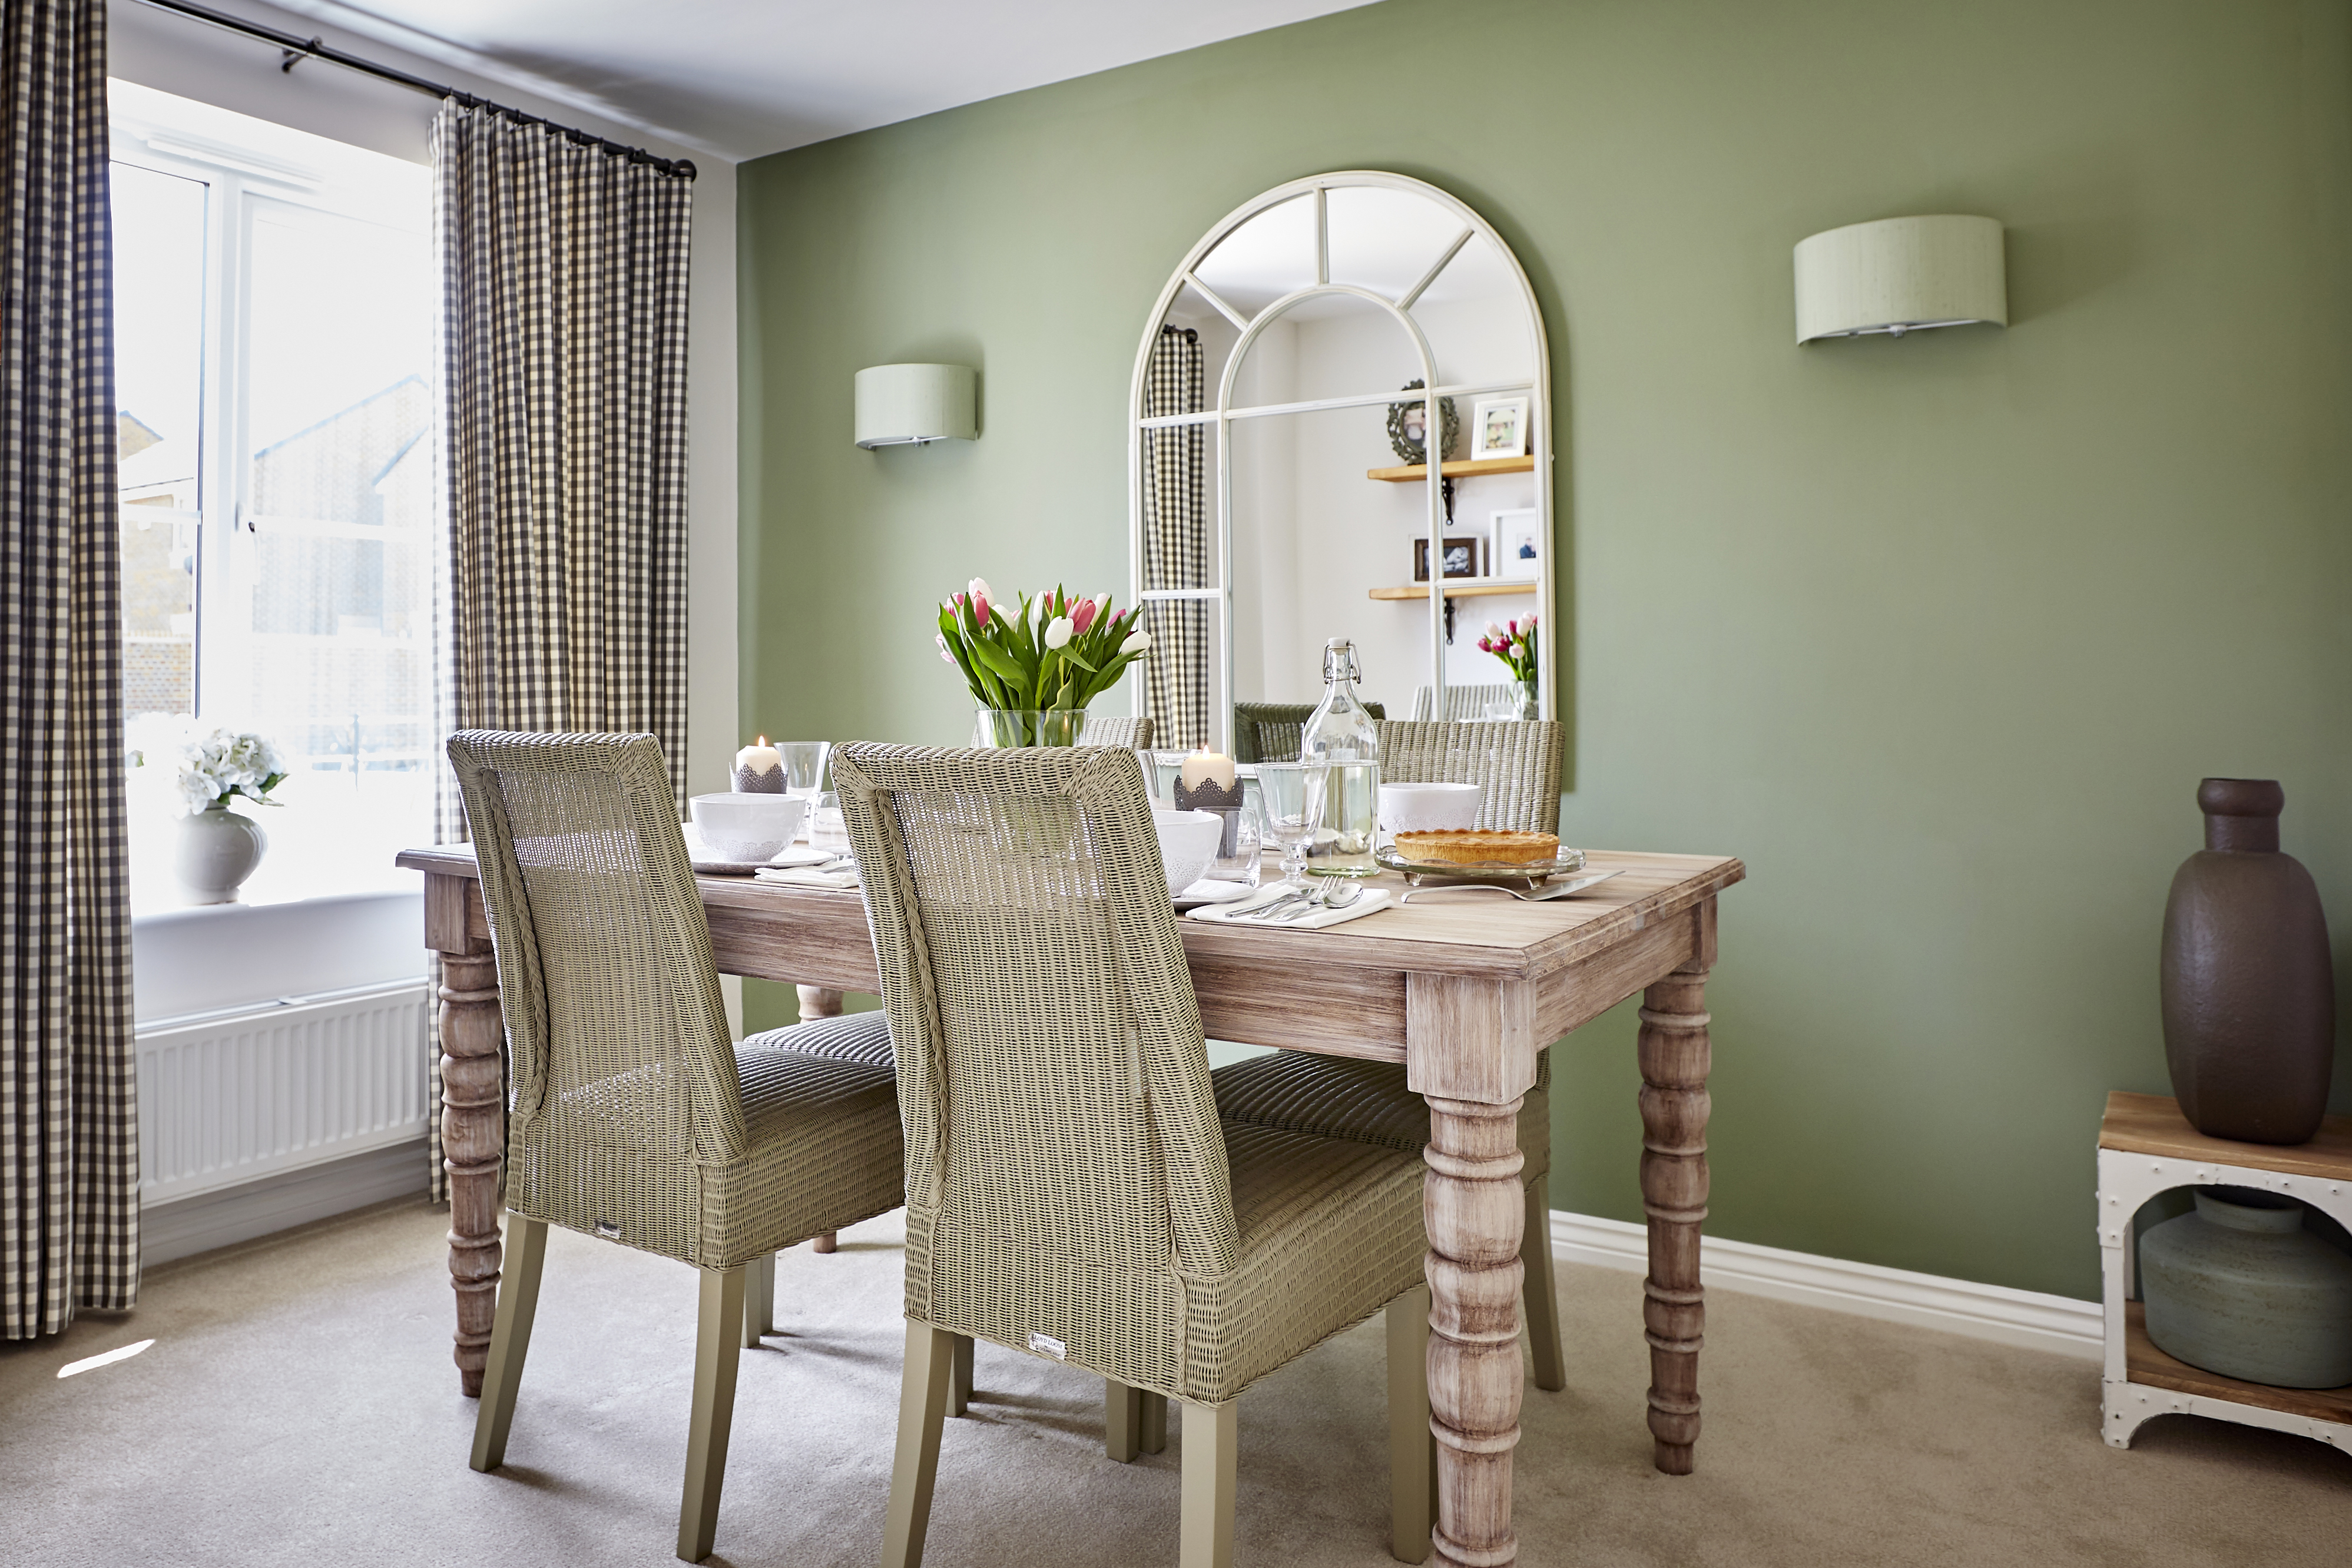 Aldenham_Dining room